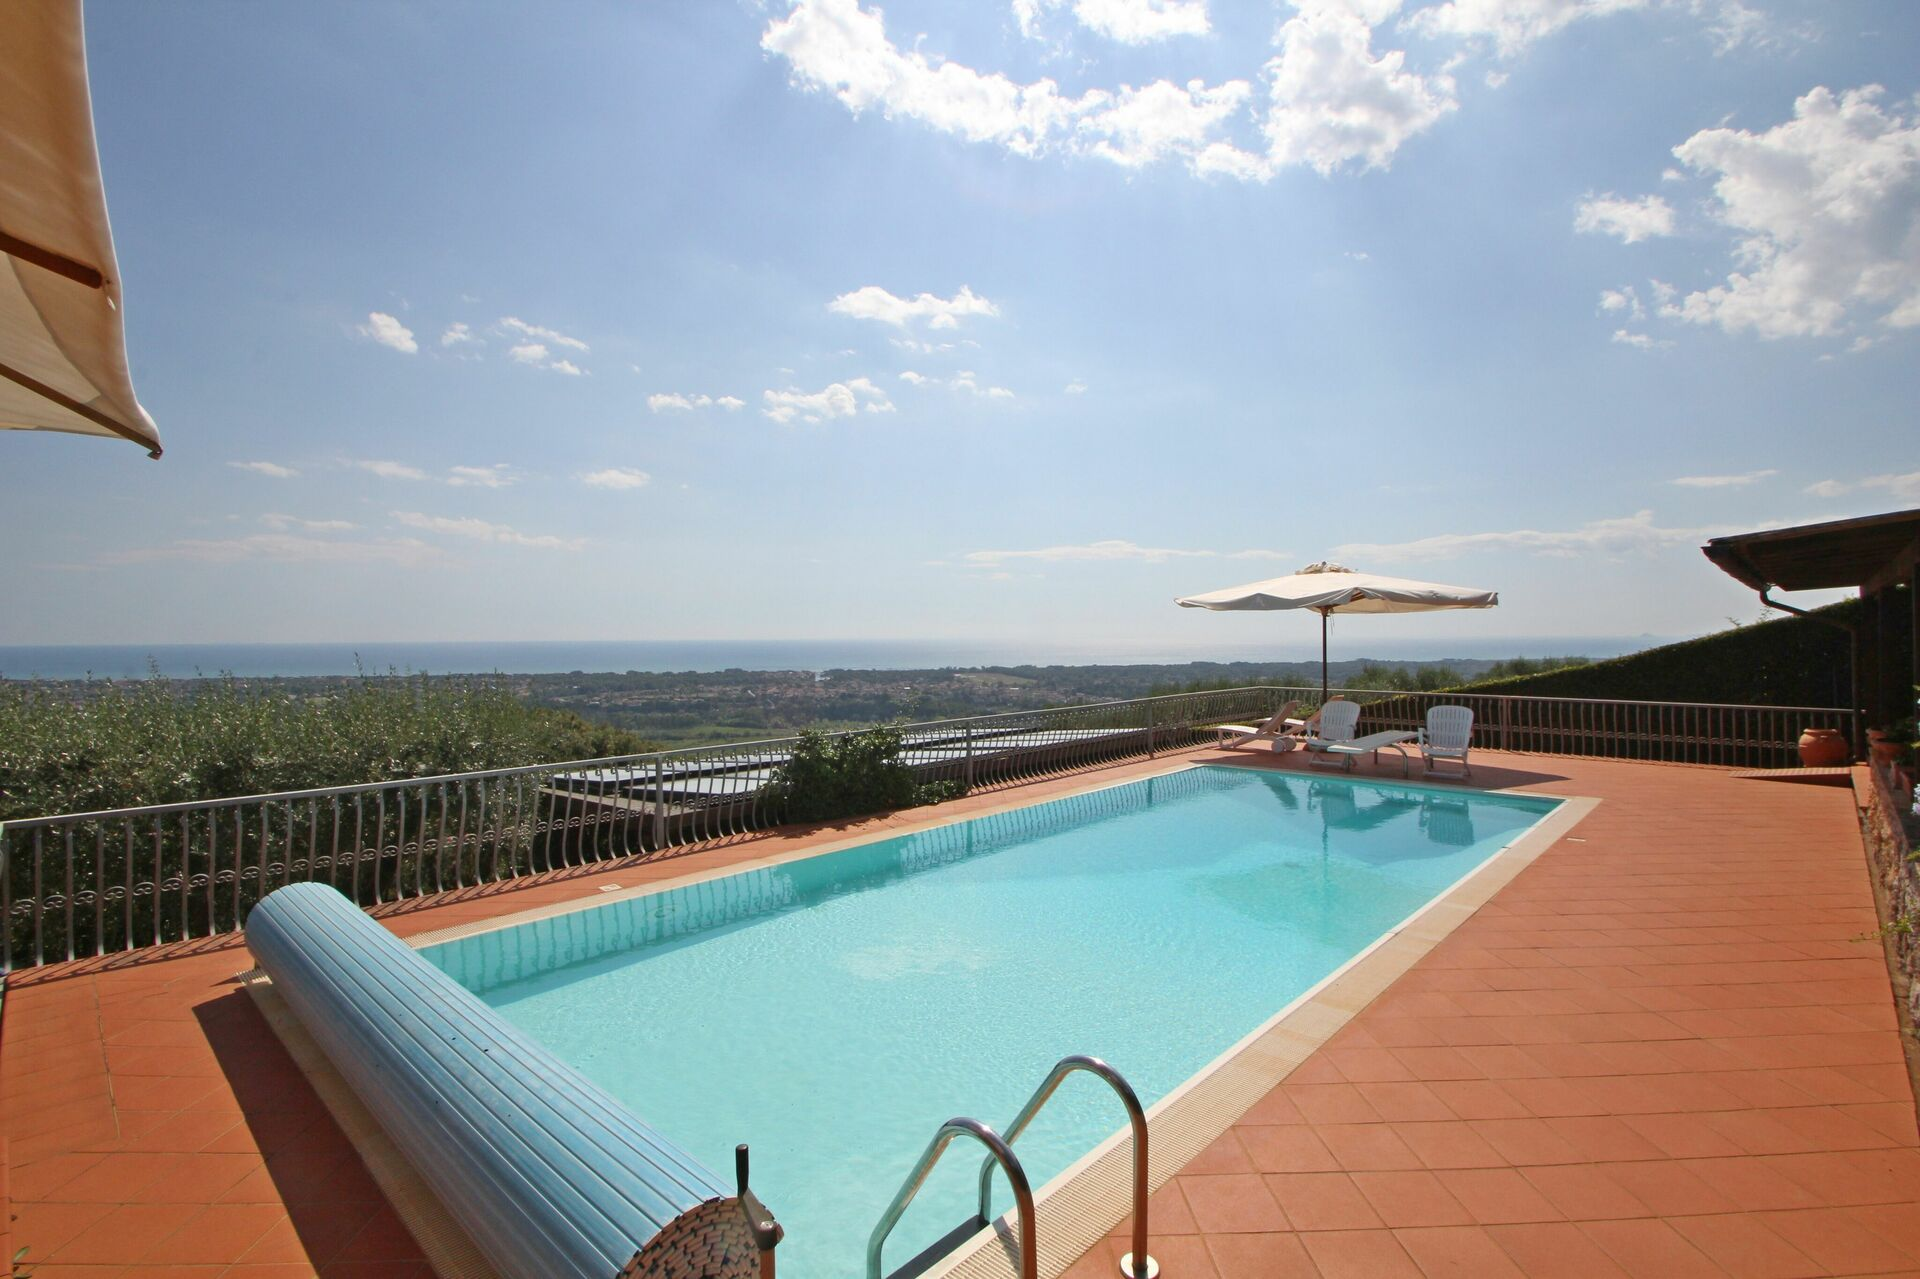 Holiday Home in Strettoia  Tuscany  Terrazza Sul Mare for 8 People